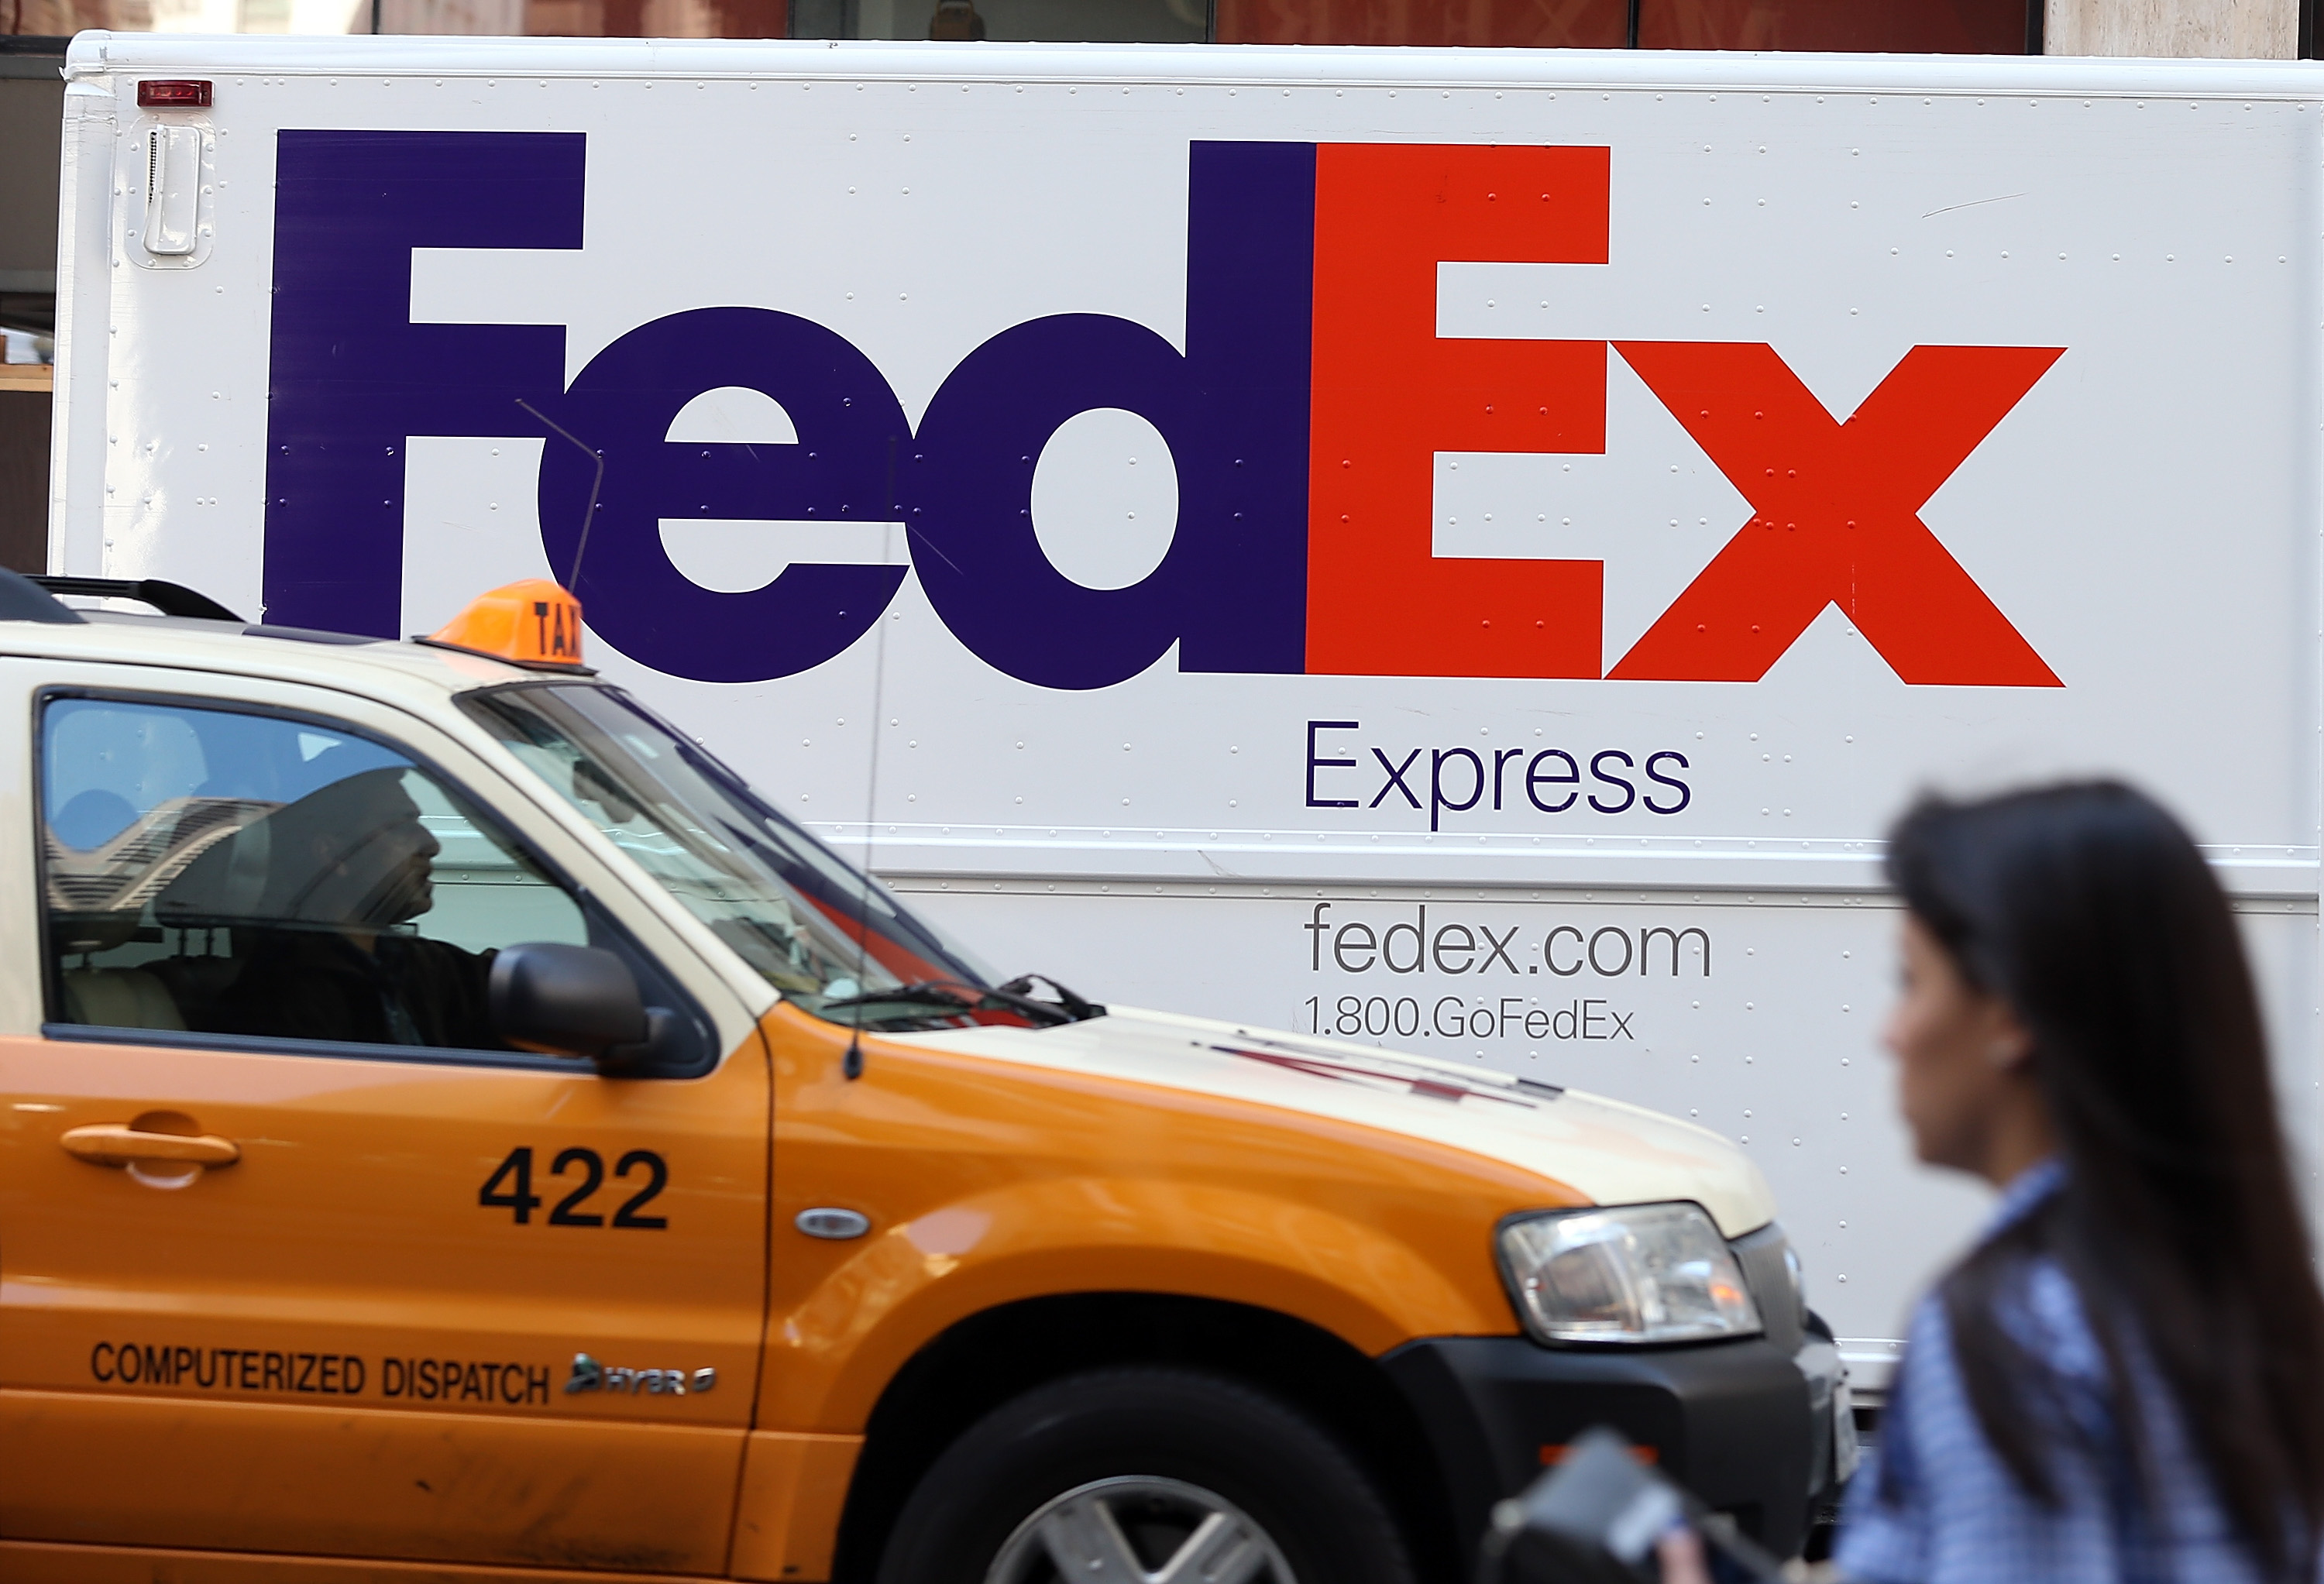 Fed Ex Drops Earnings Estimate After Profits Fall One Percent In First Quarter